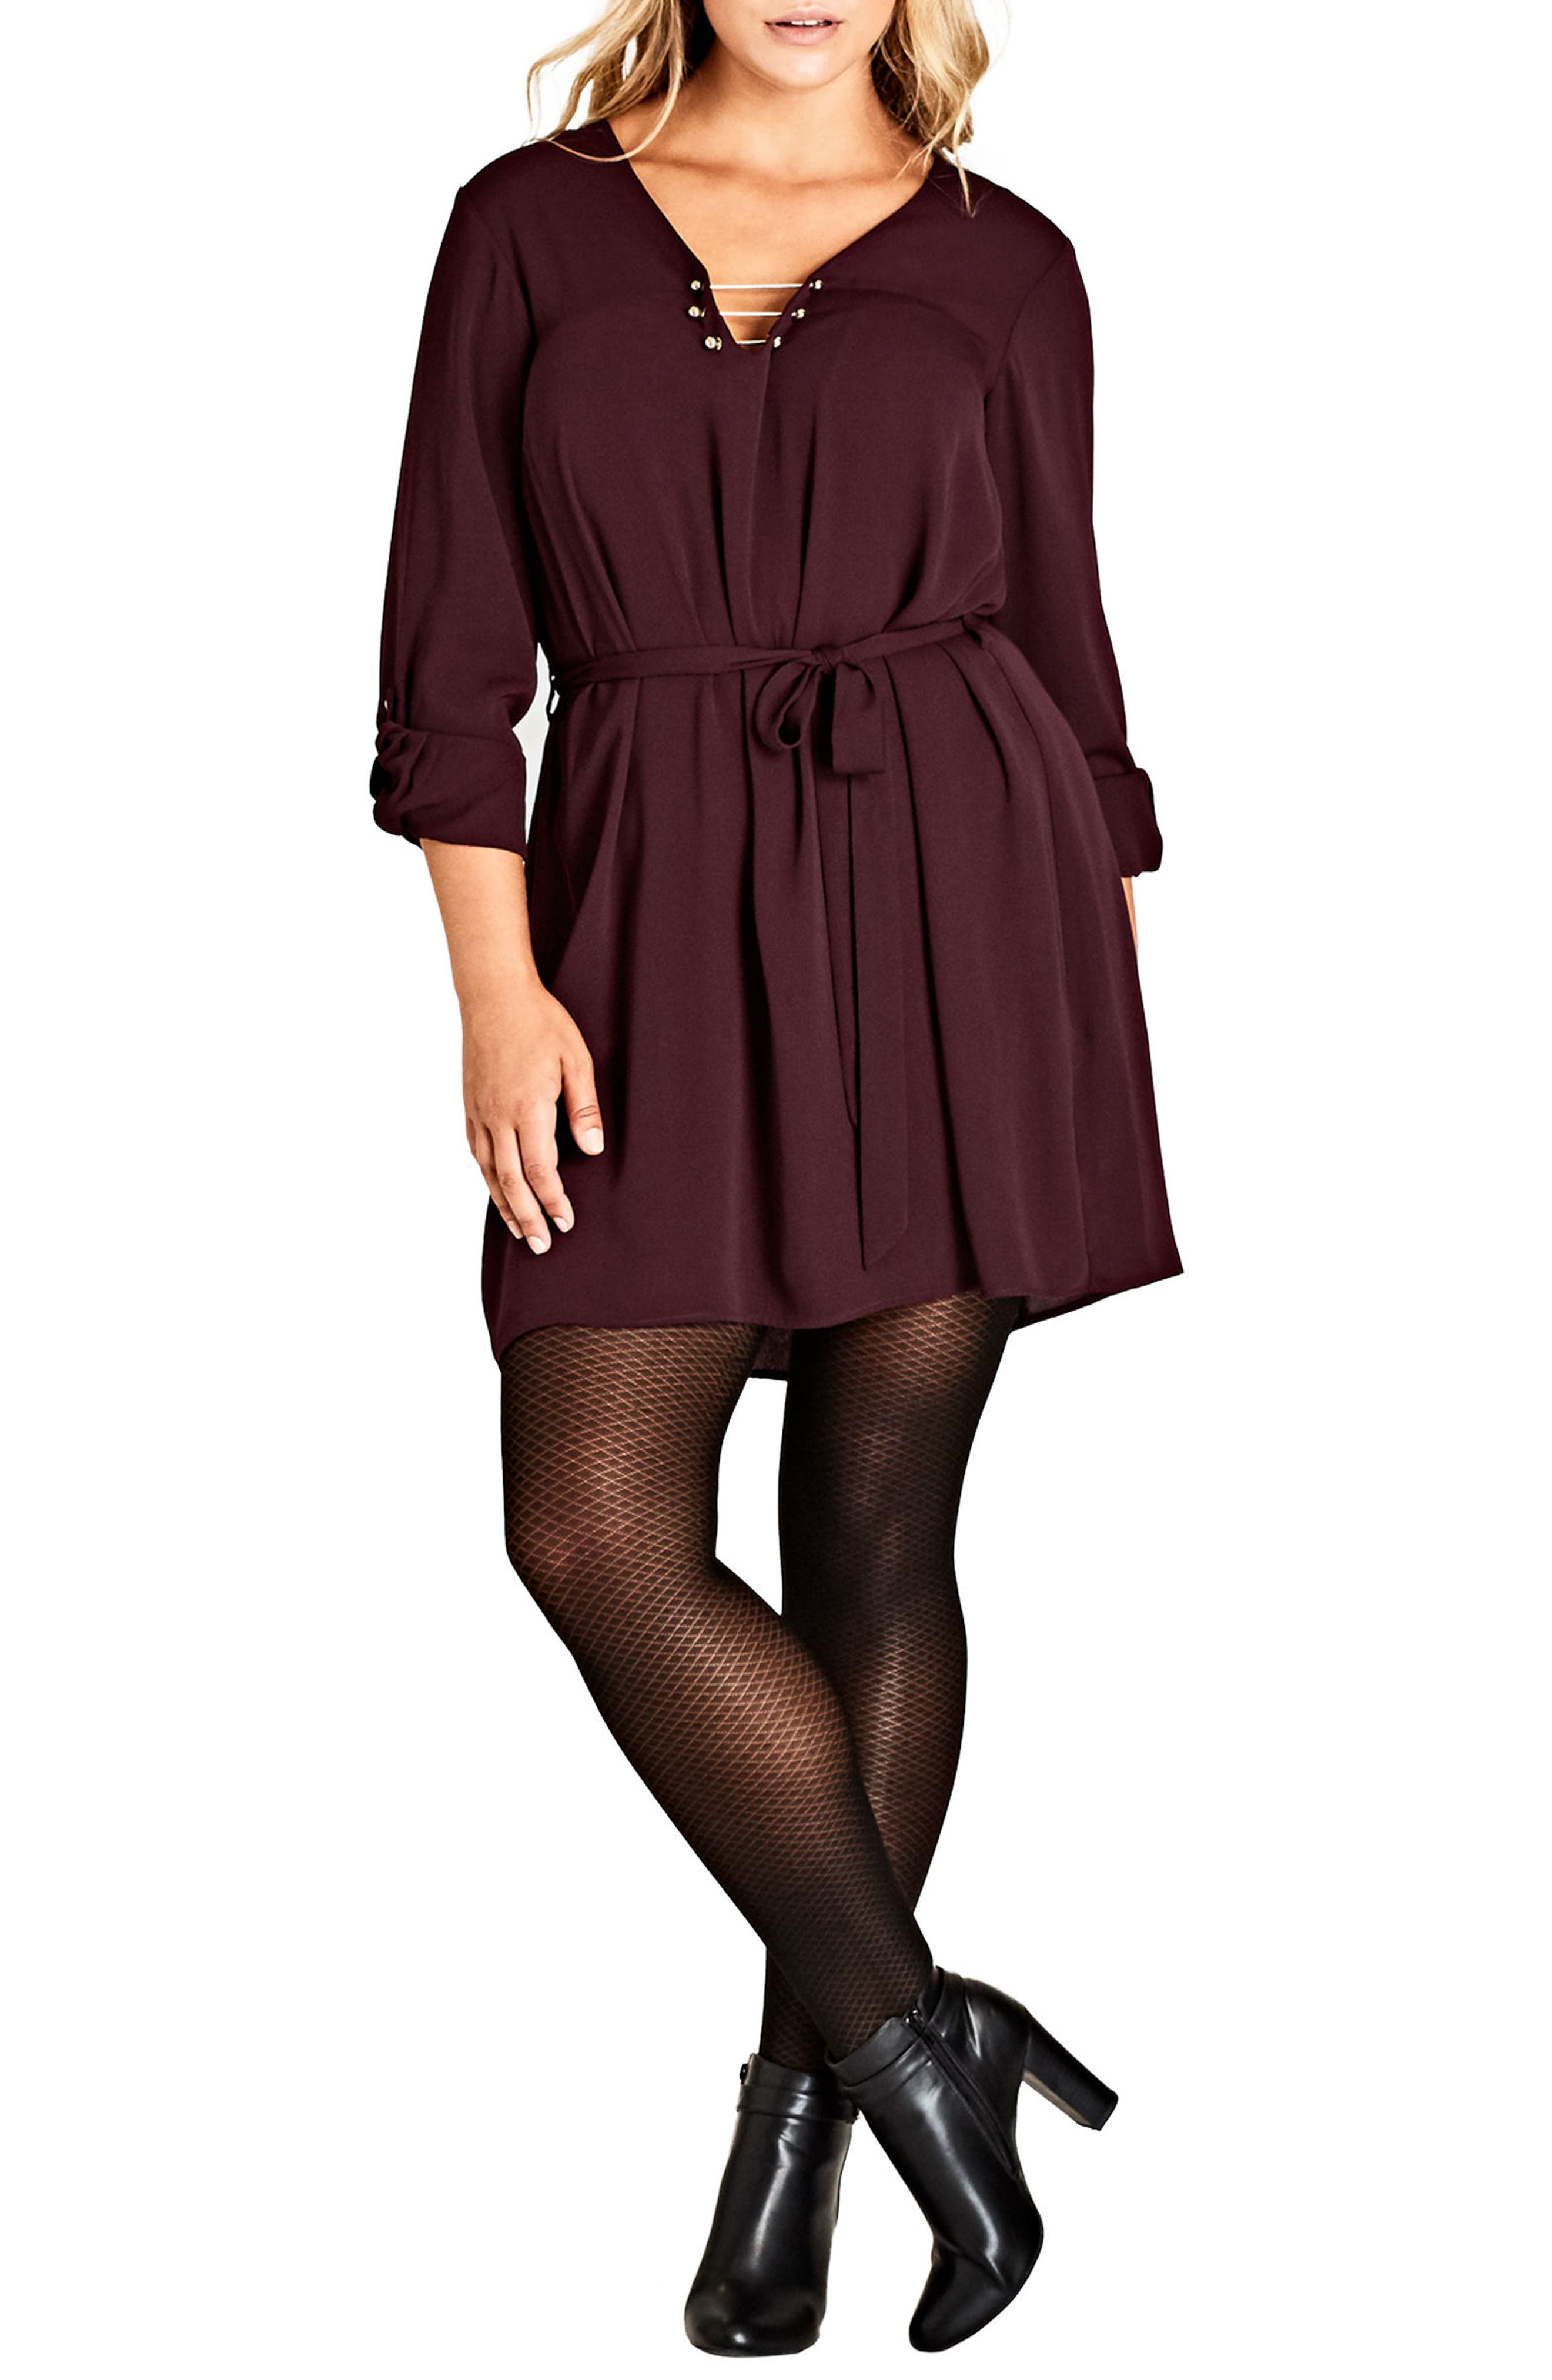 Main Image - City Chic Pierced Heart Belted Tunic (Plus Size)